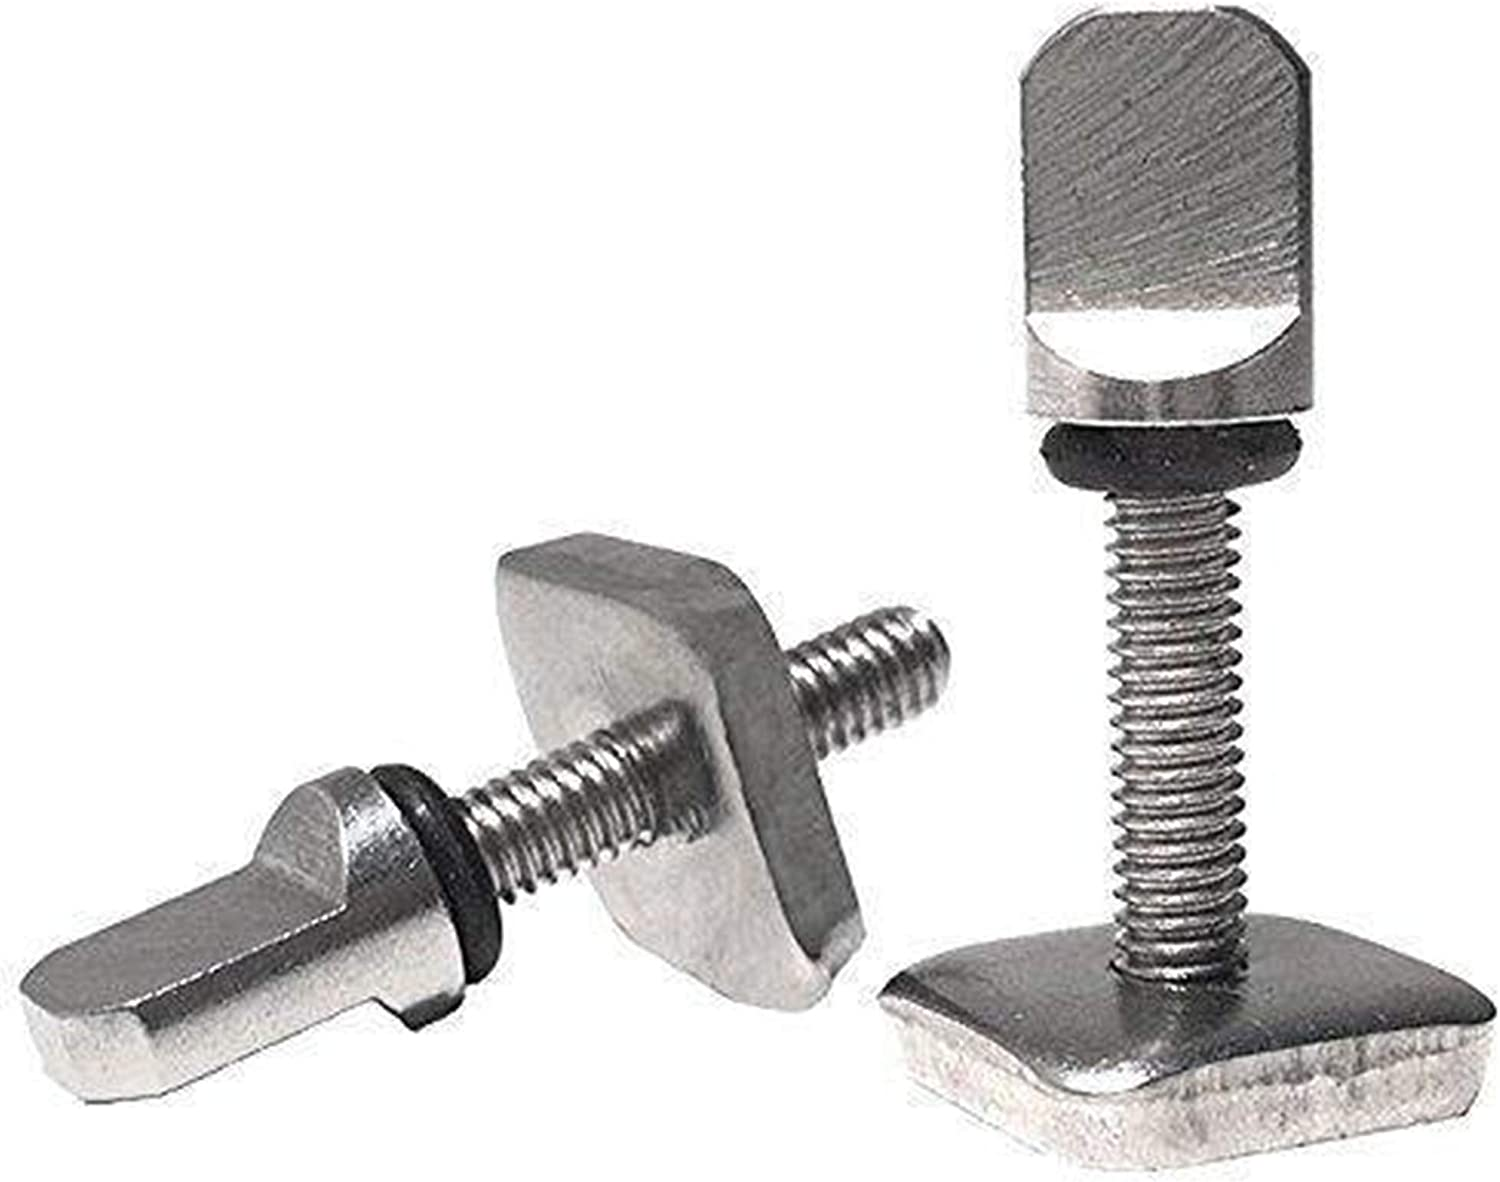 PeaLoe Surfing Accessories No Tool Stainless Steel Fin-Screw